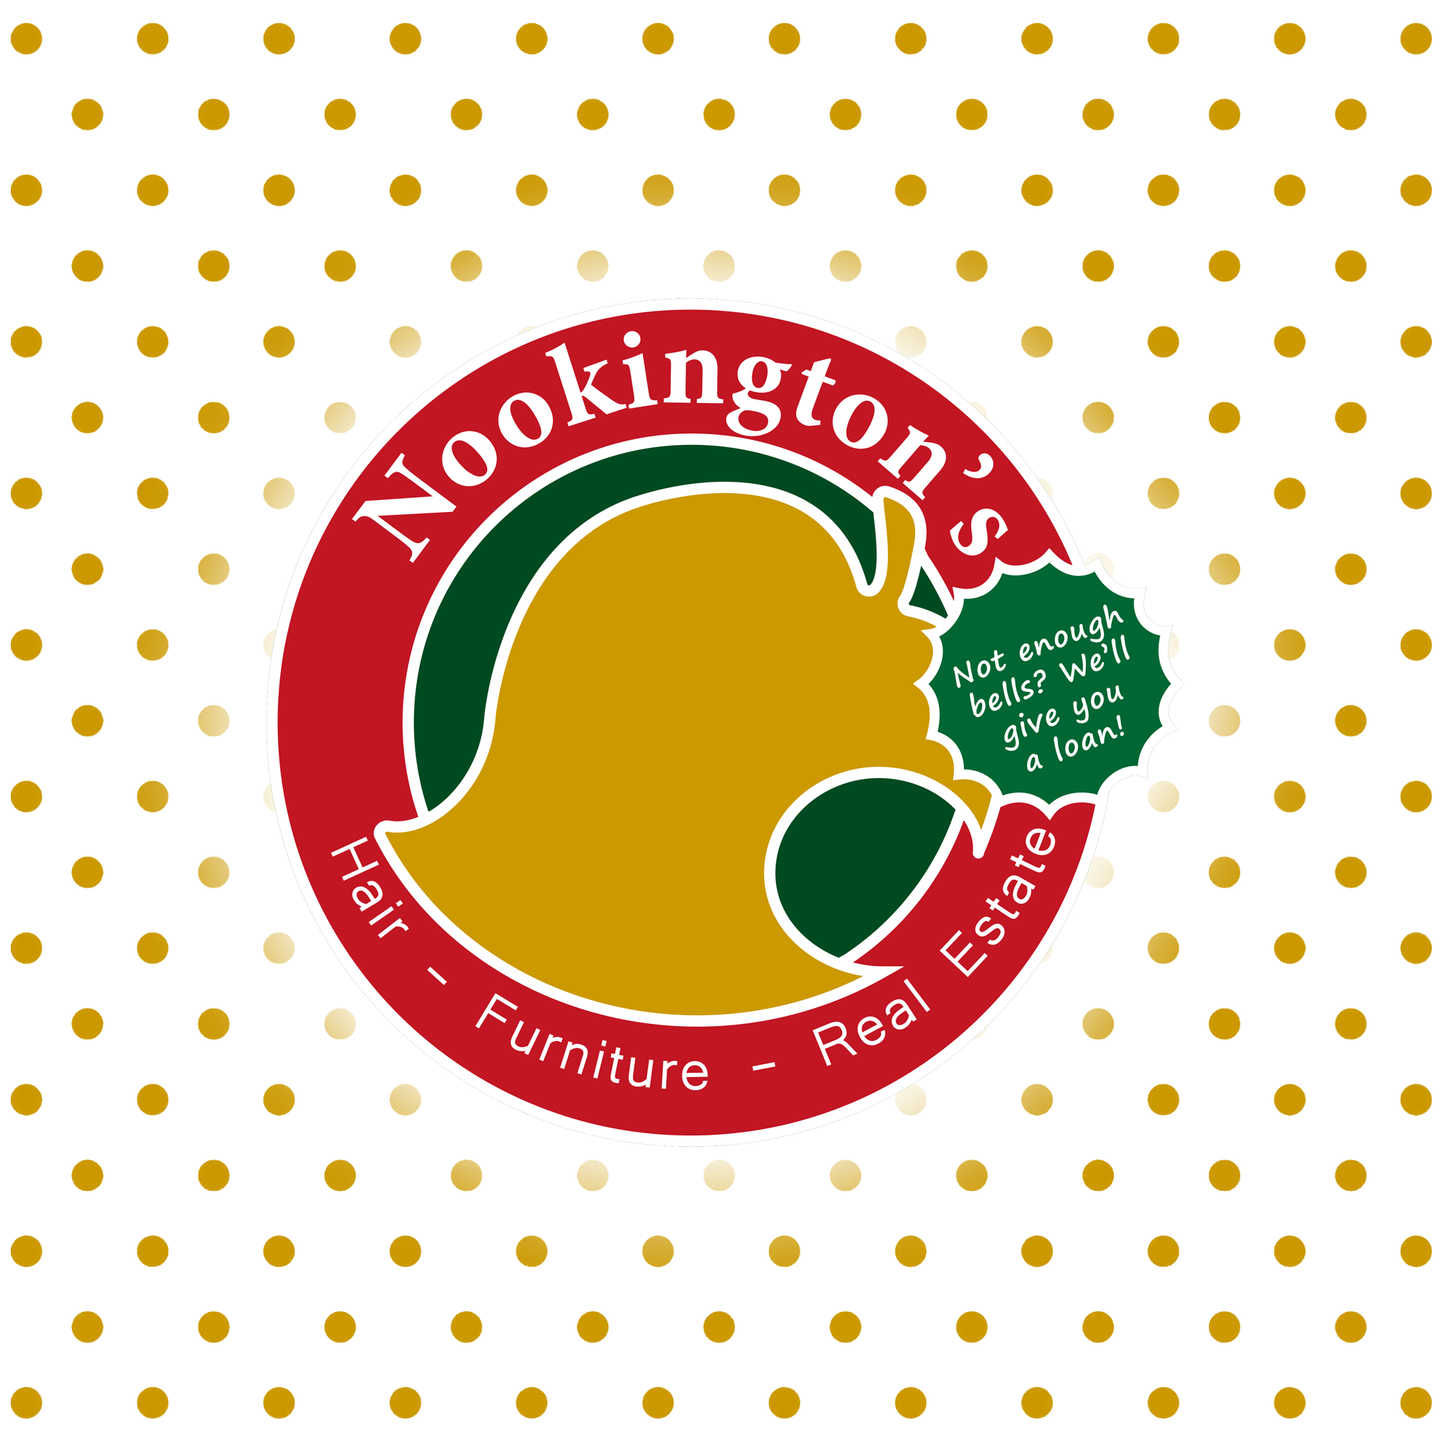 Nookington's - Animal Crossing Individual Sticker